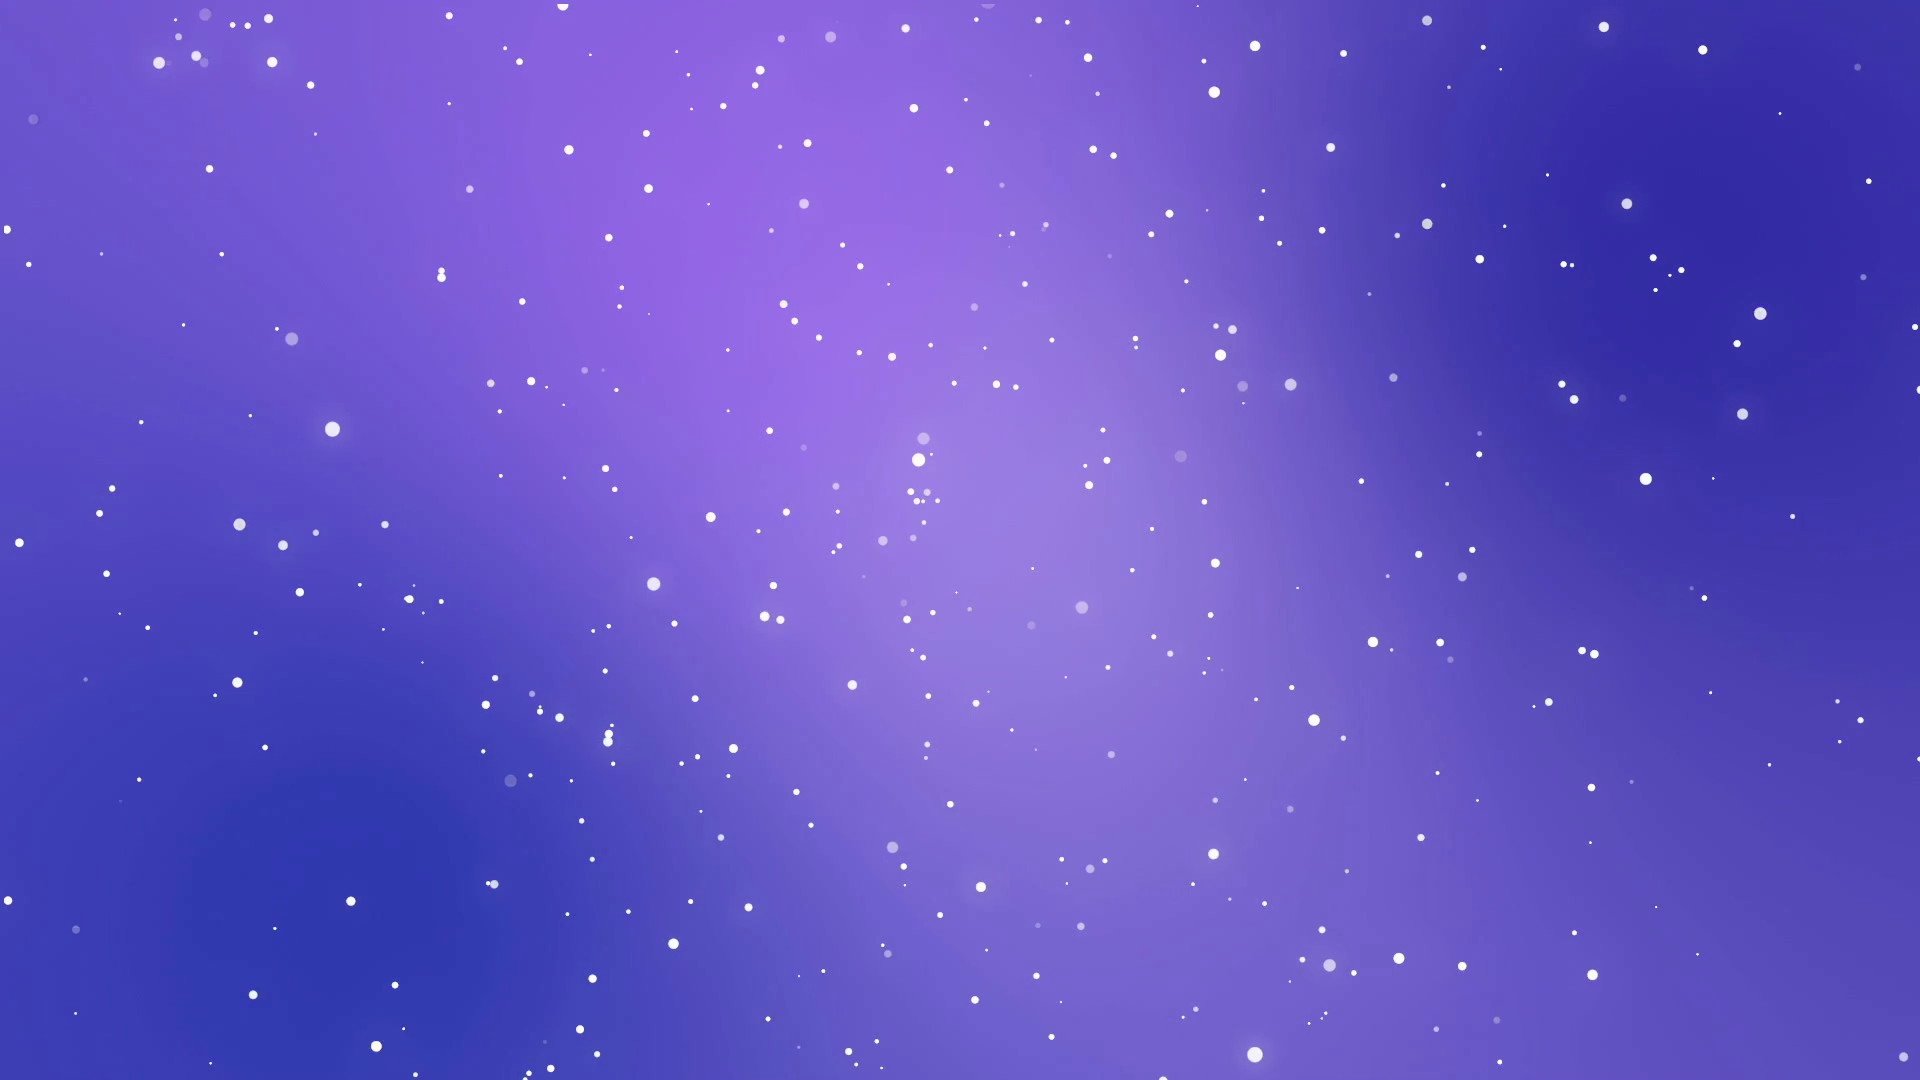 1920x1080 Starry night sky animation with light particles flickering on purple  gradient background Motion Background - VideoBlocks